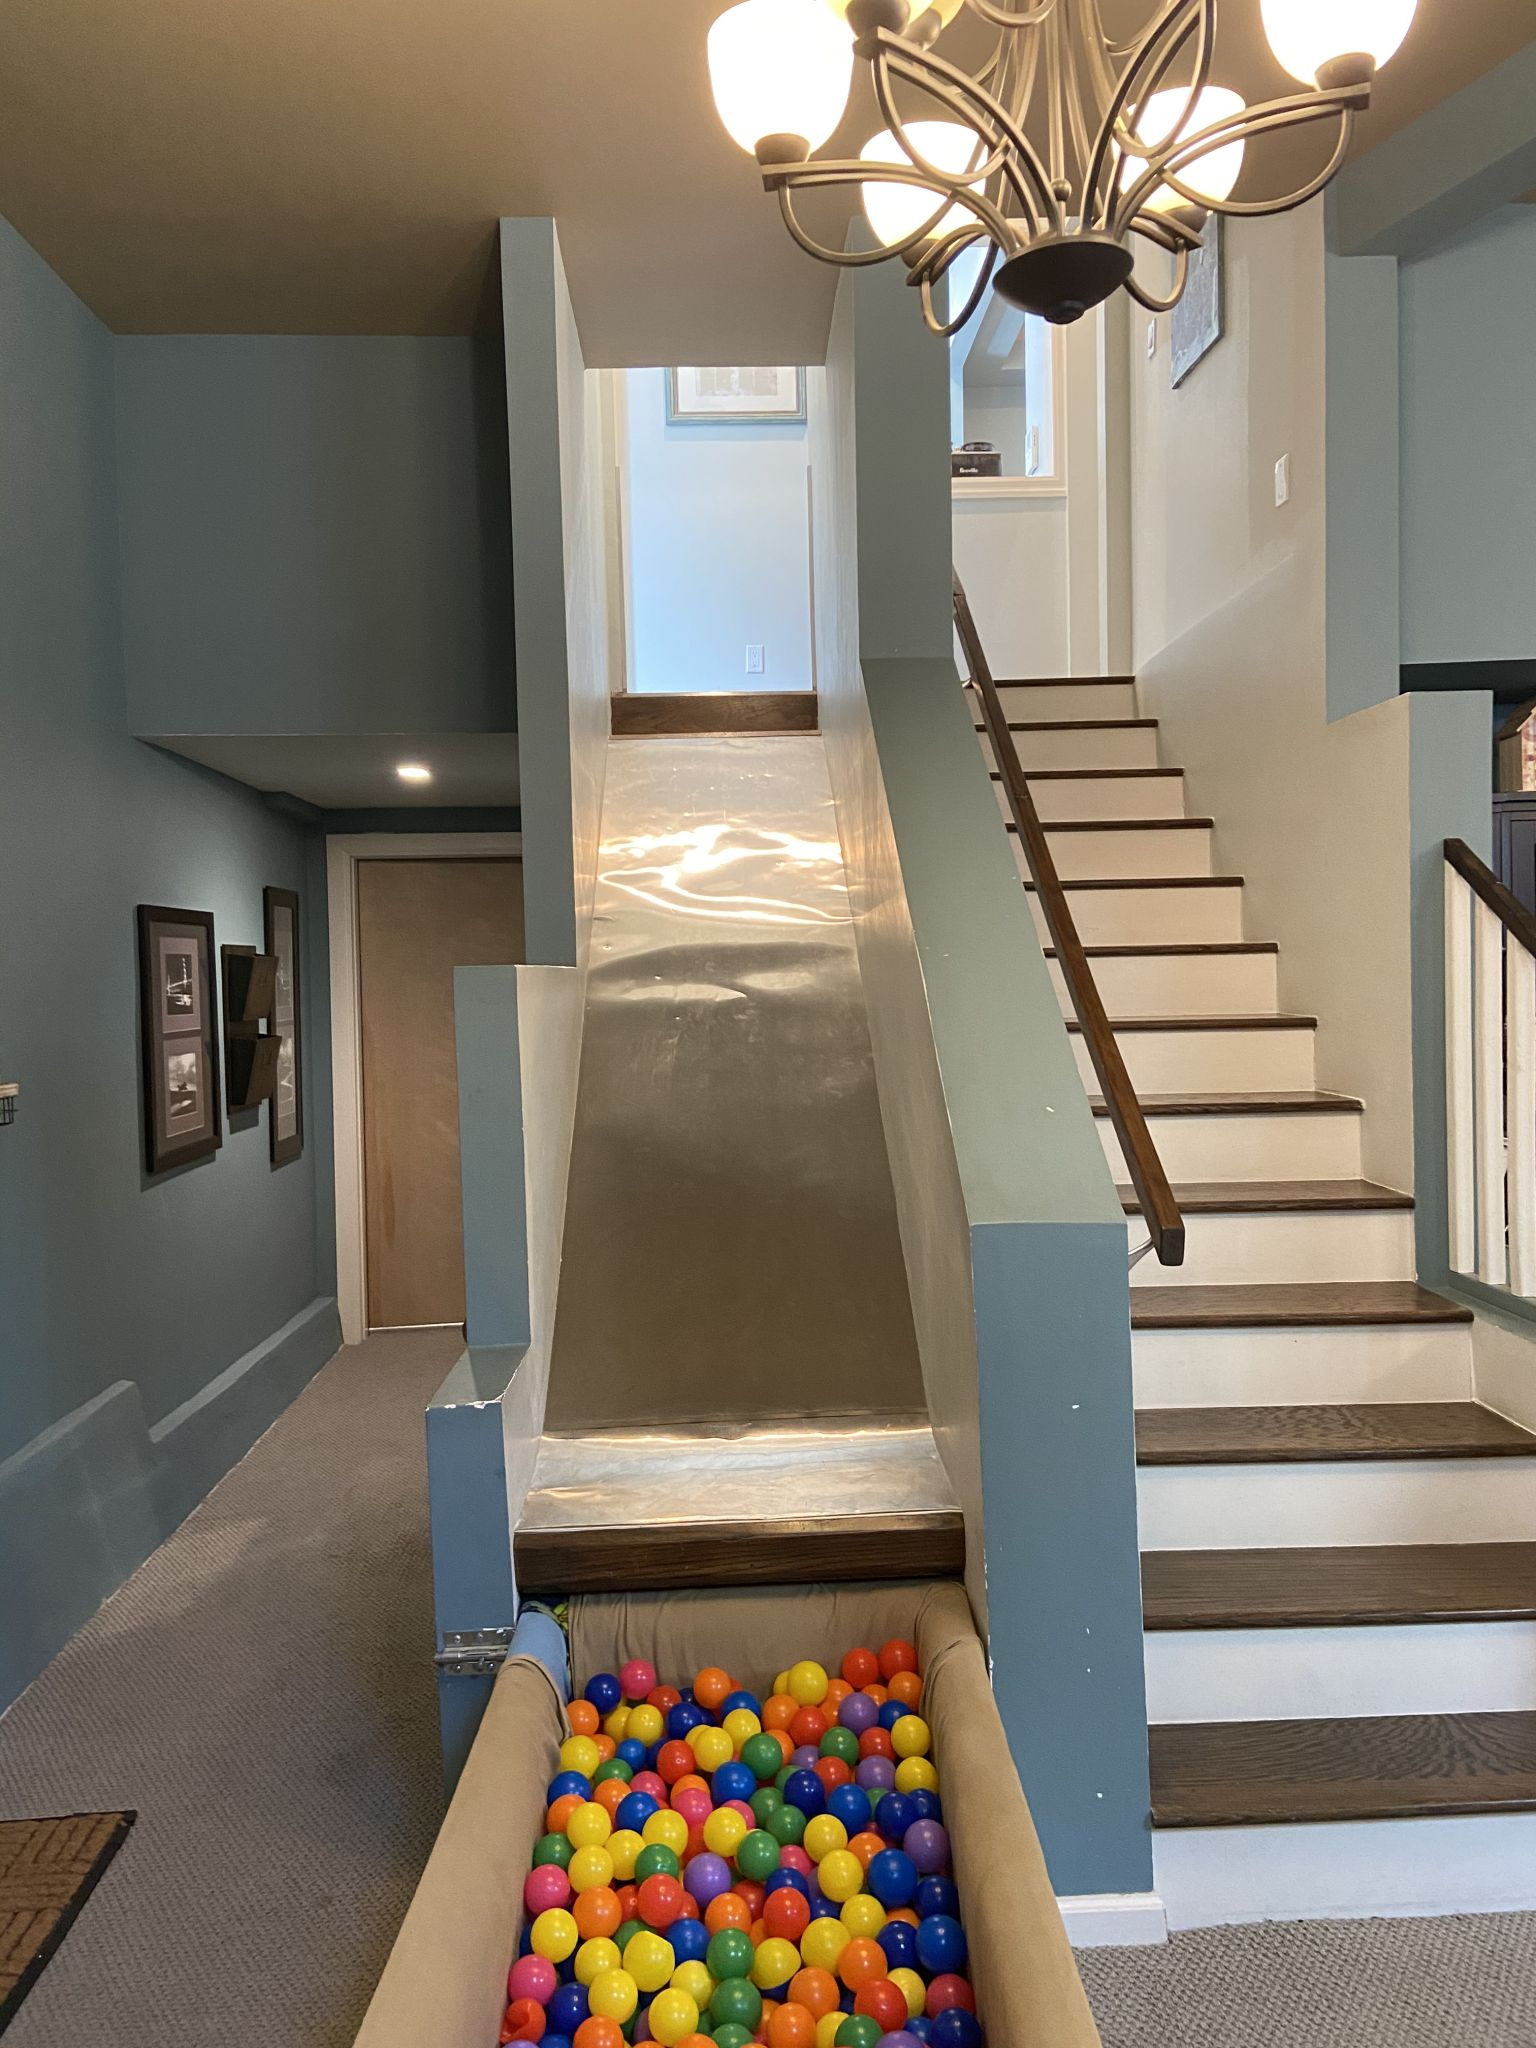 The slide runs into a ball pit that can be pushed away when not in use.